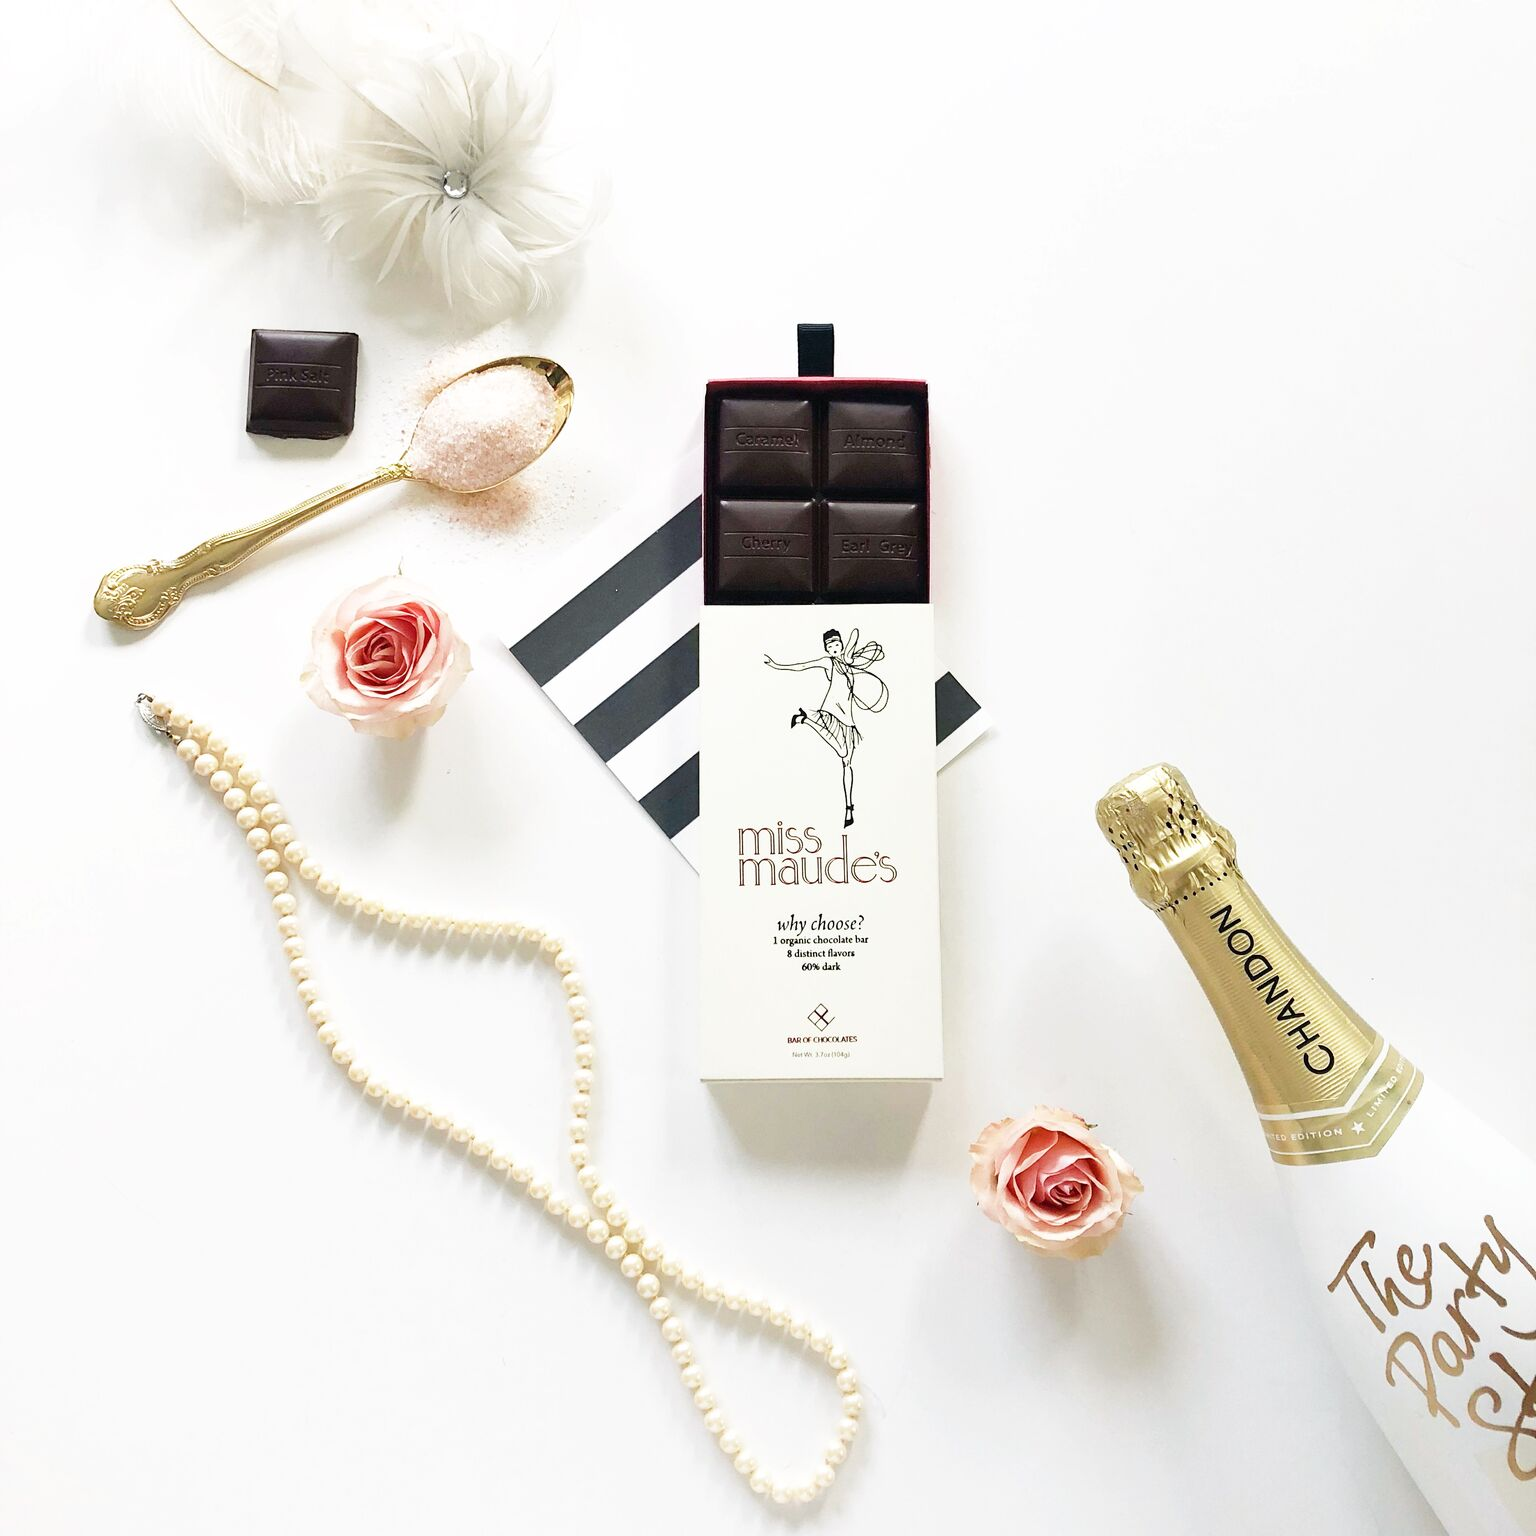 miss maude's - We loved adding a luxury touch to a chocolate bar that tastes luxurious!